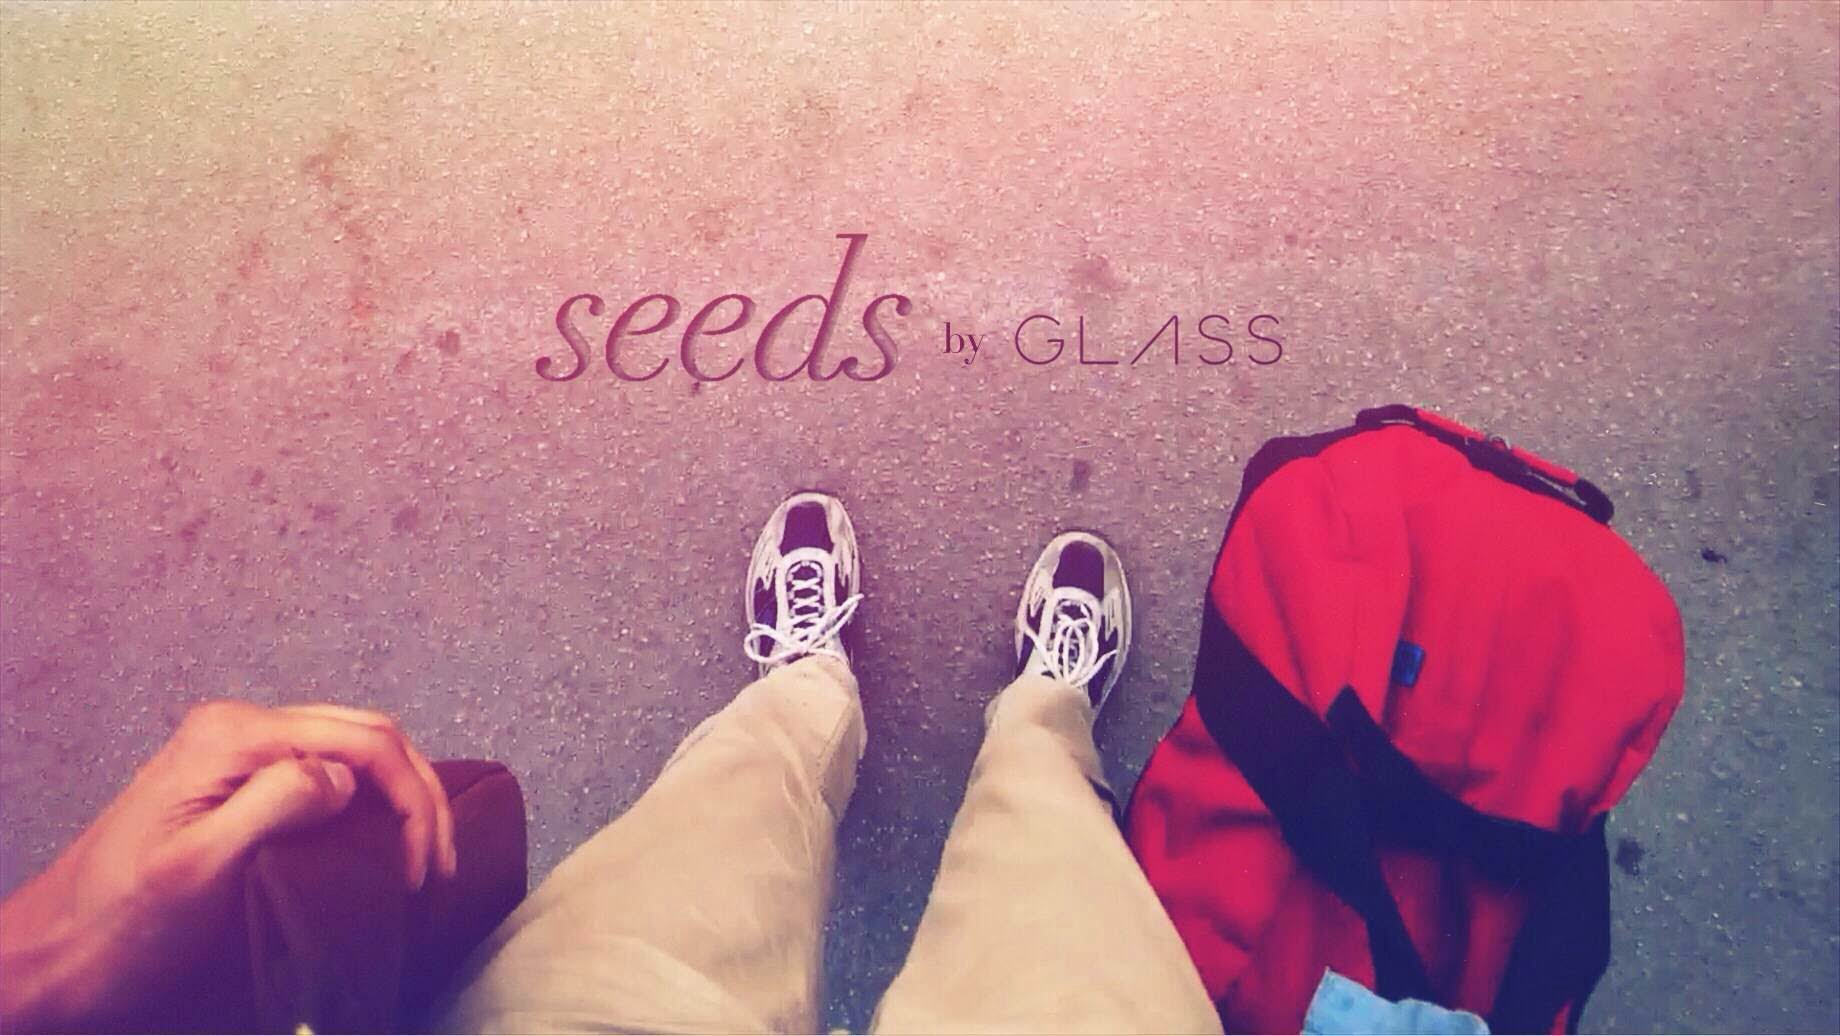 Seeds [through Google Glass]